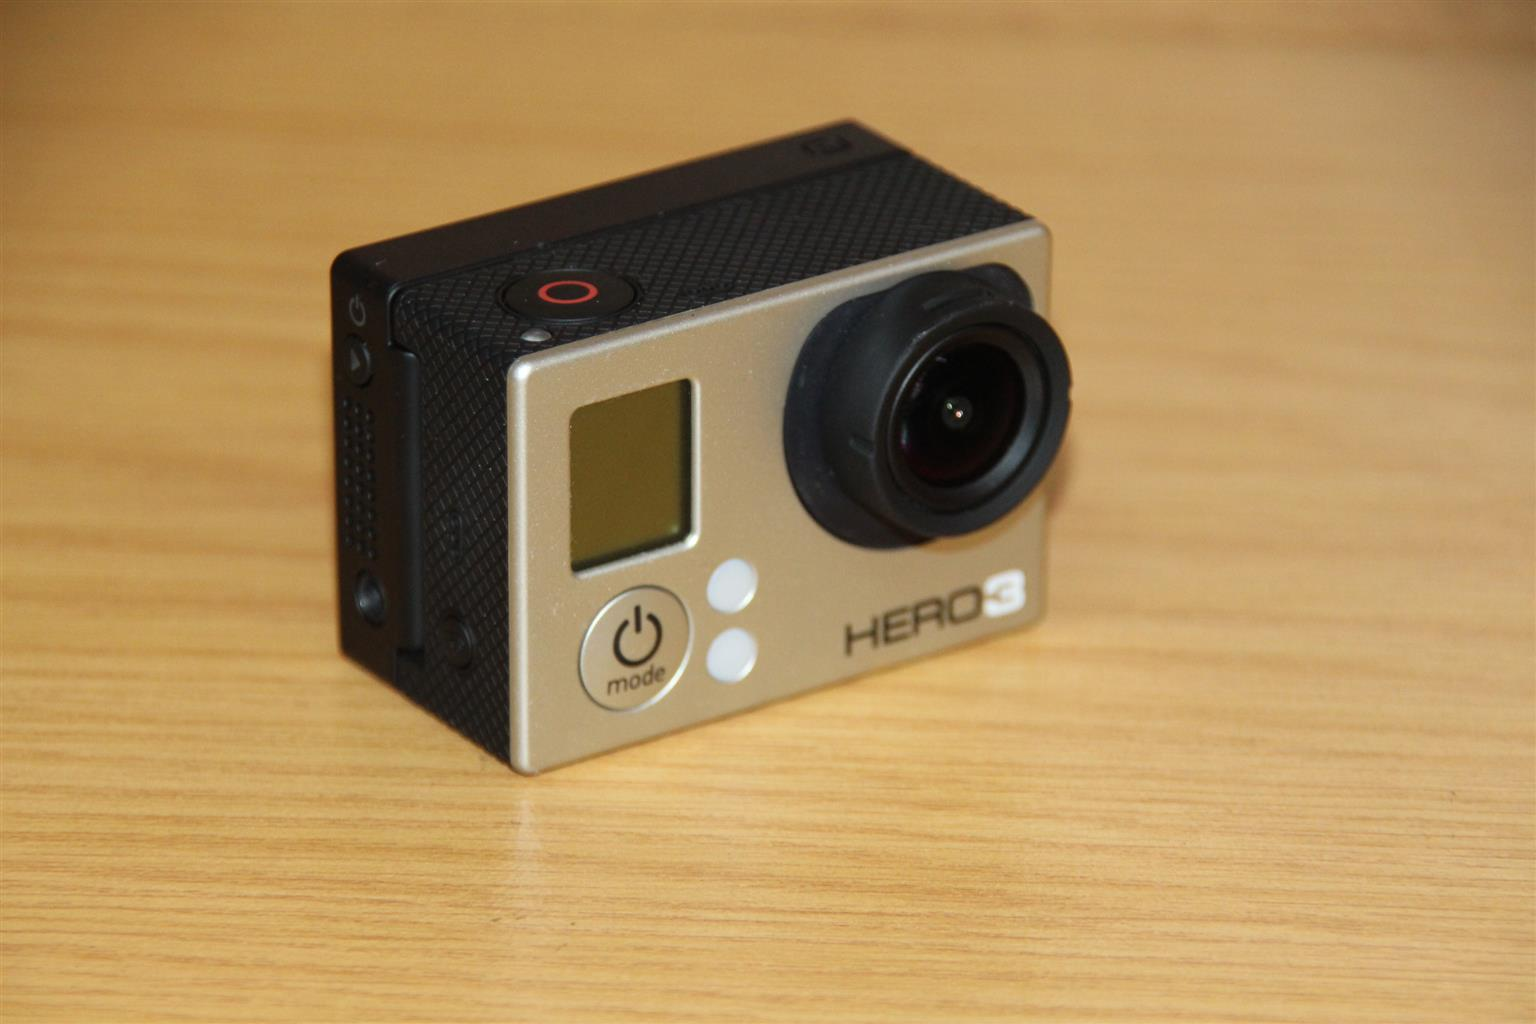 Go Pro hero 3 white with Touch screen